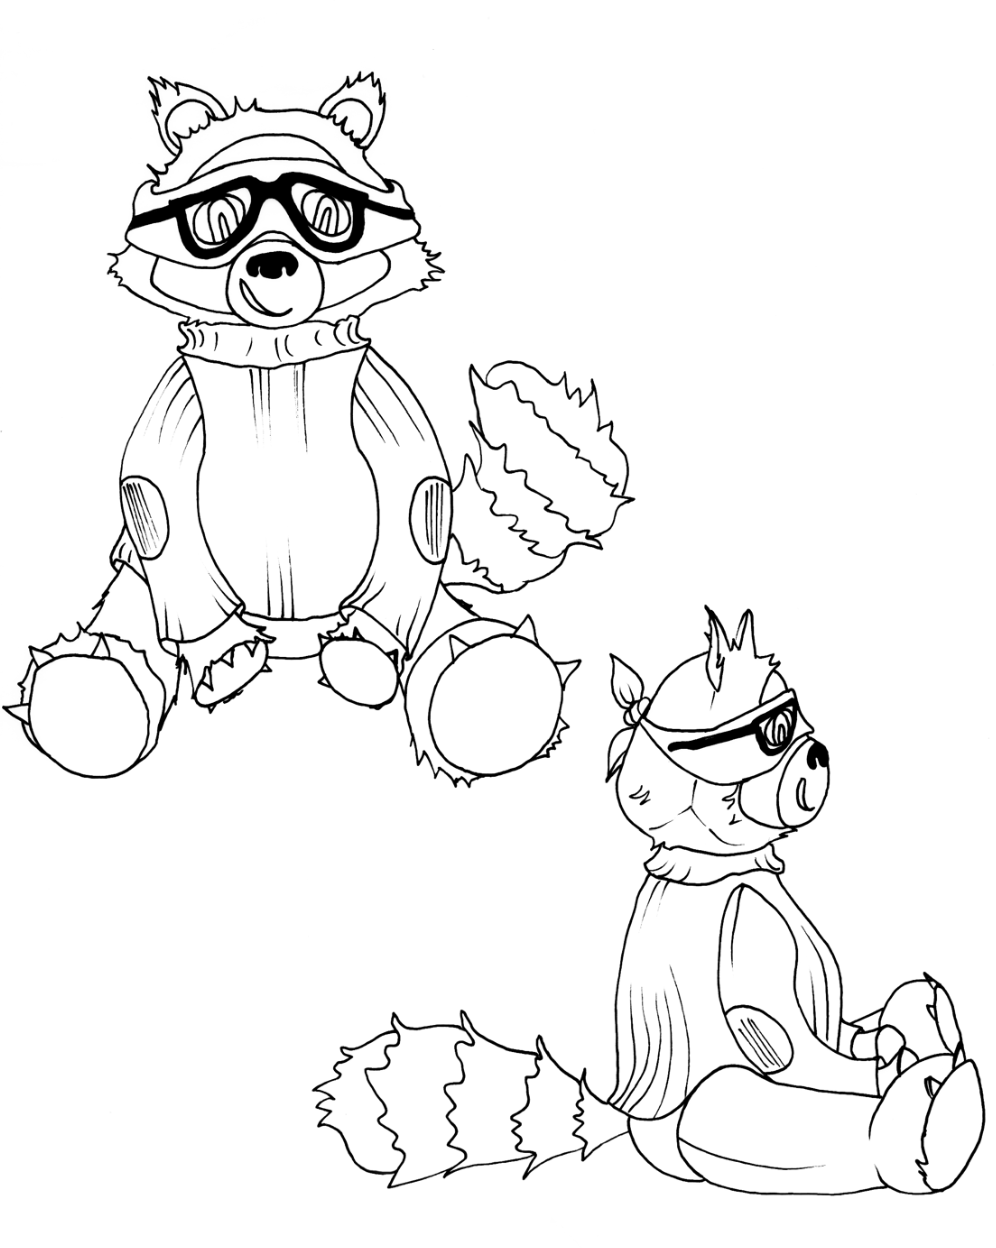 coloring pages for kids online zebra coloring pages free printable kids coloring pages pages for kids coloring online